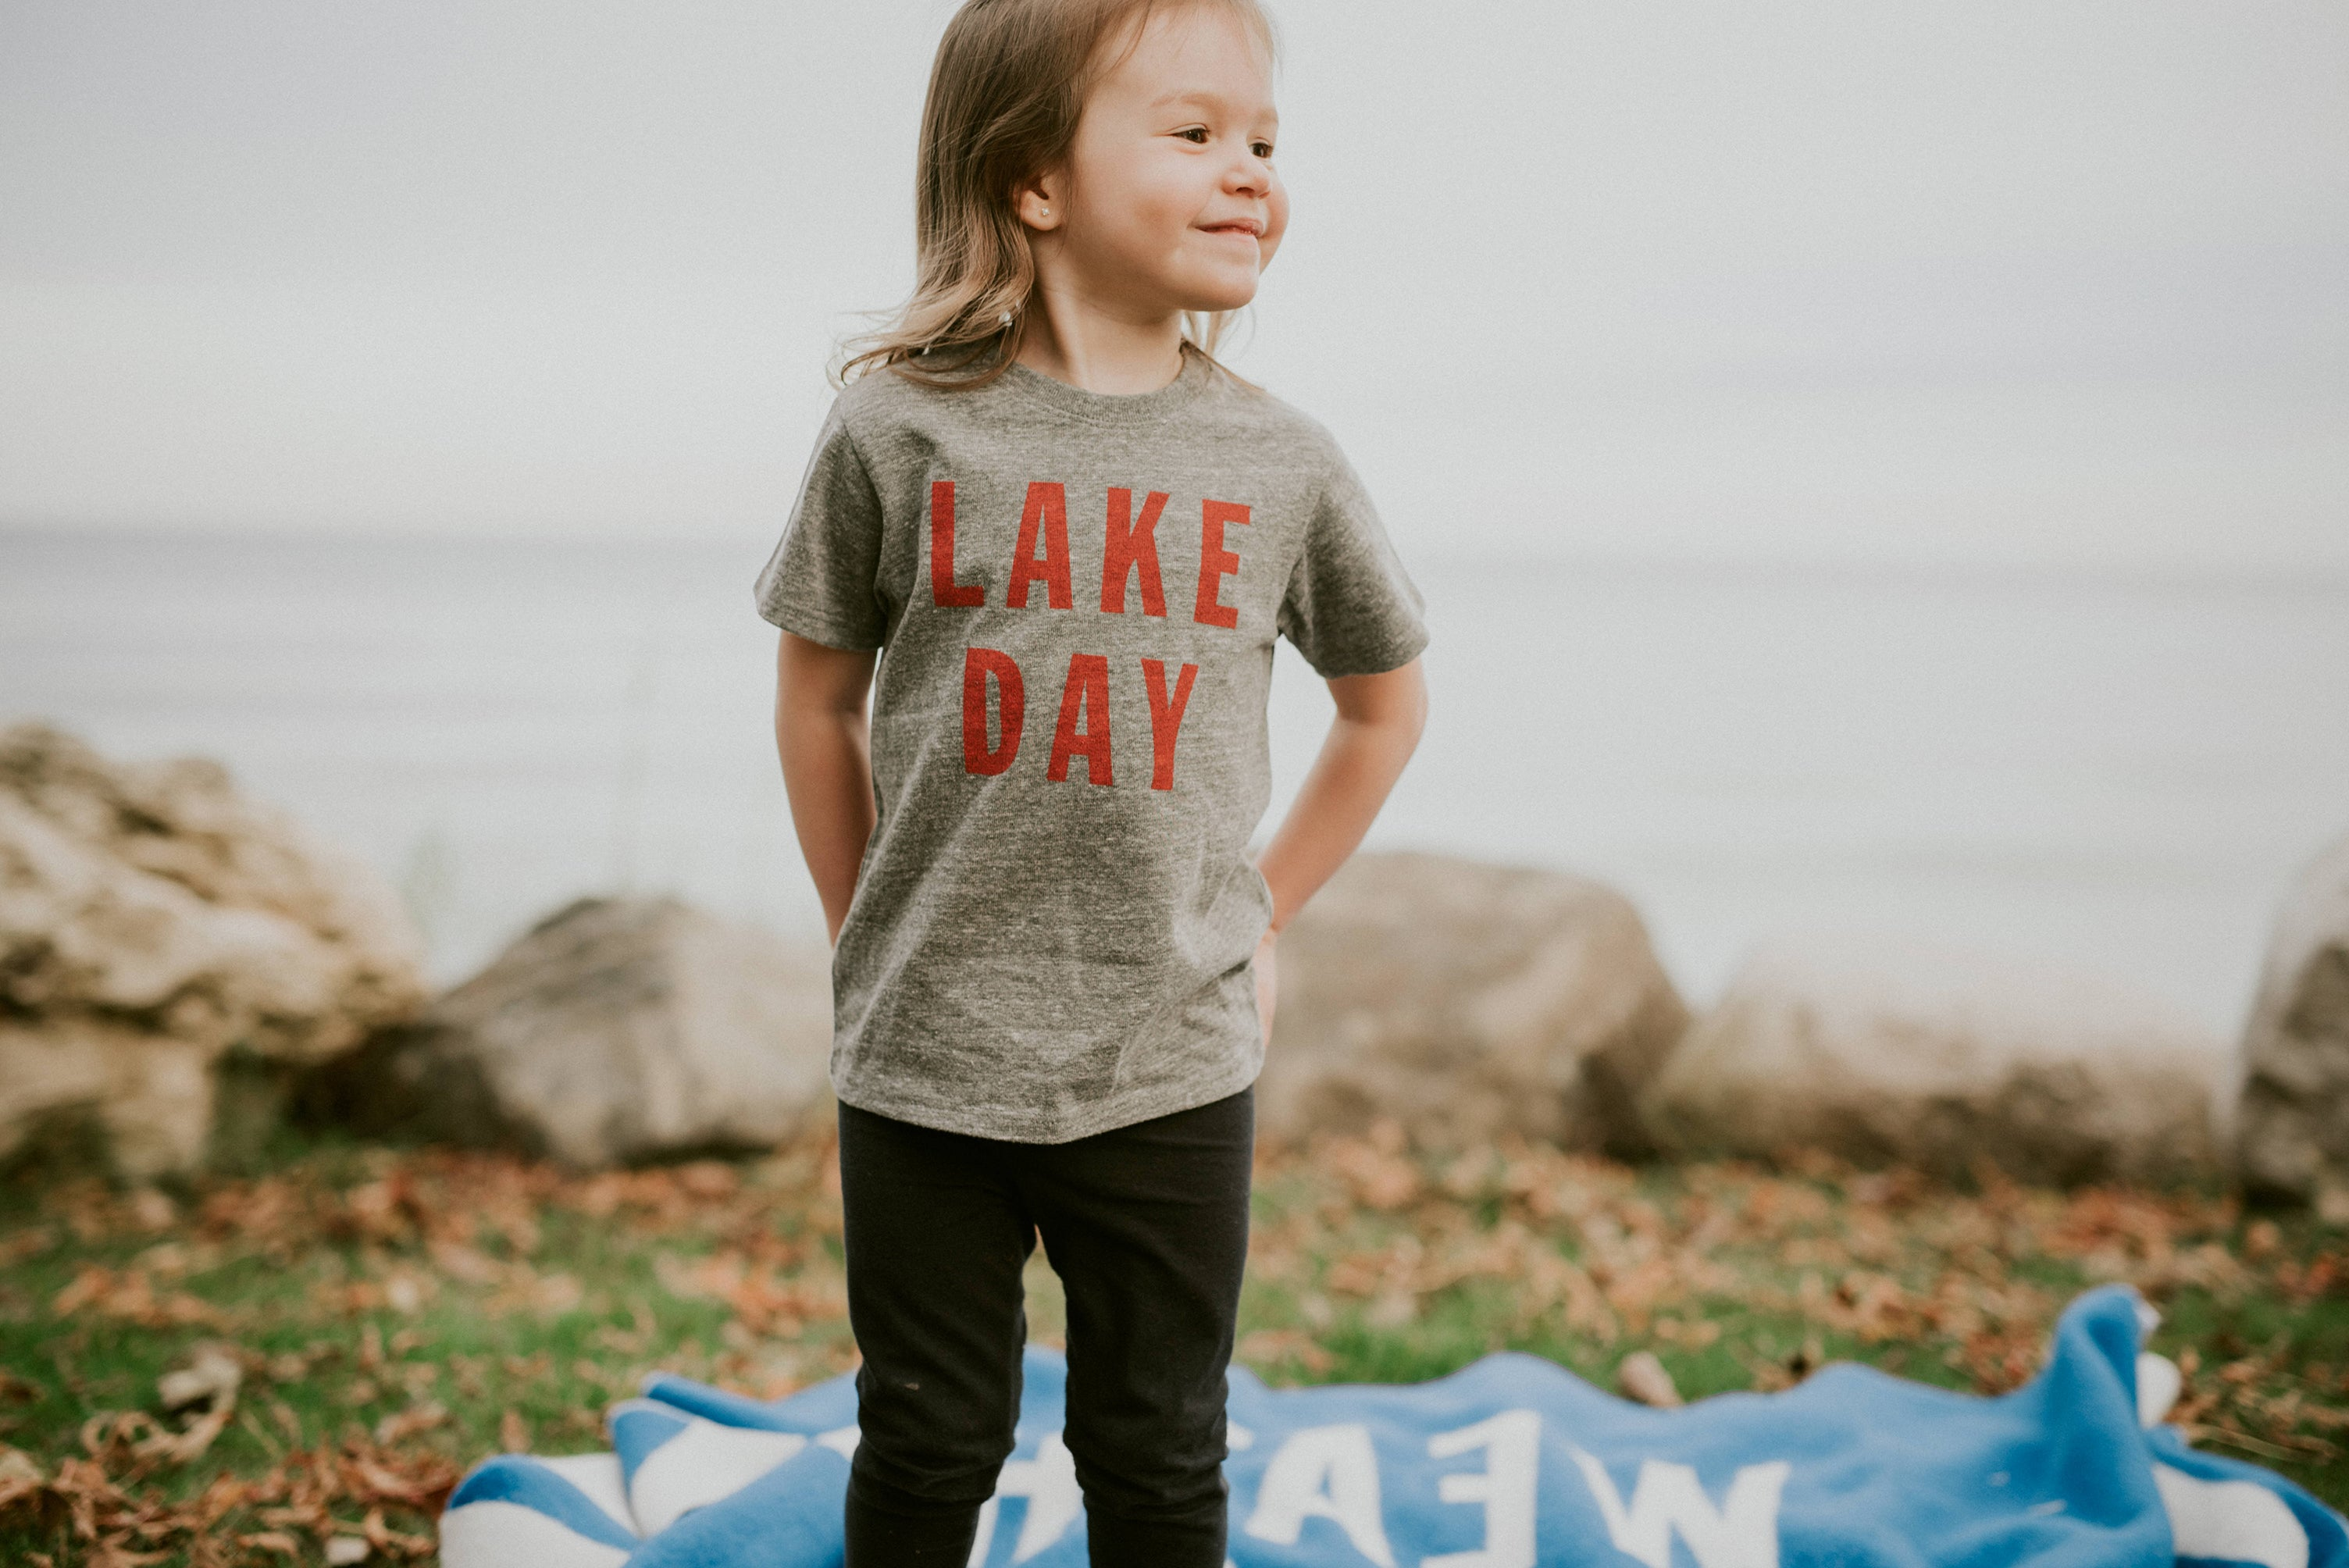 lake day cranberry youth kids t shirt